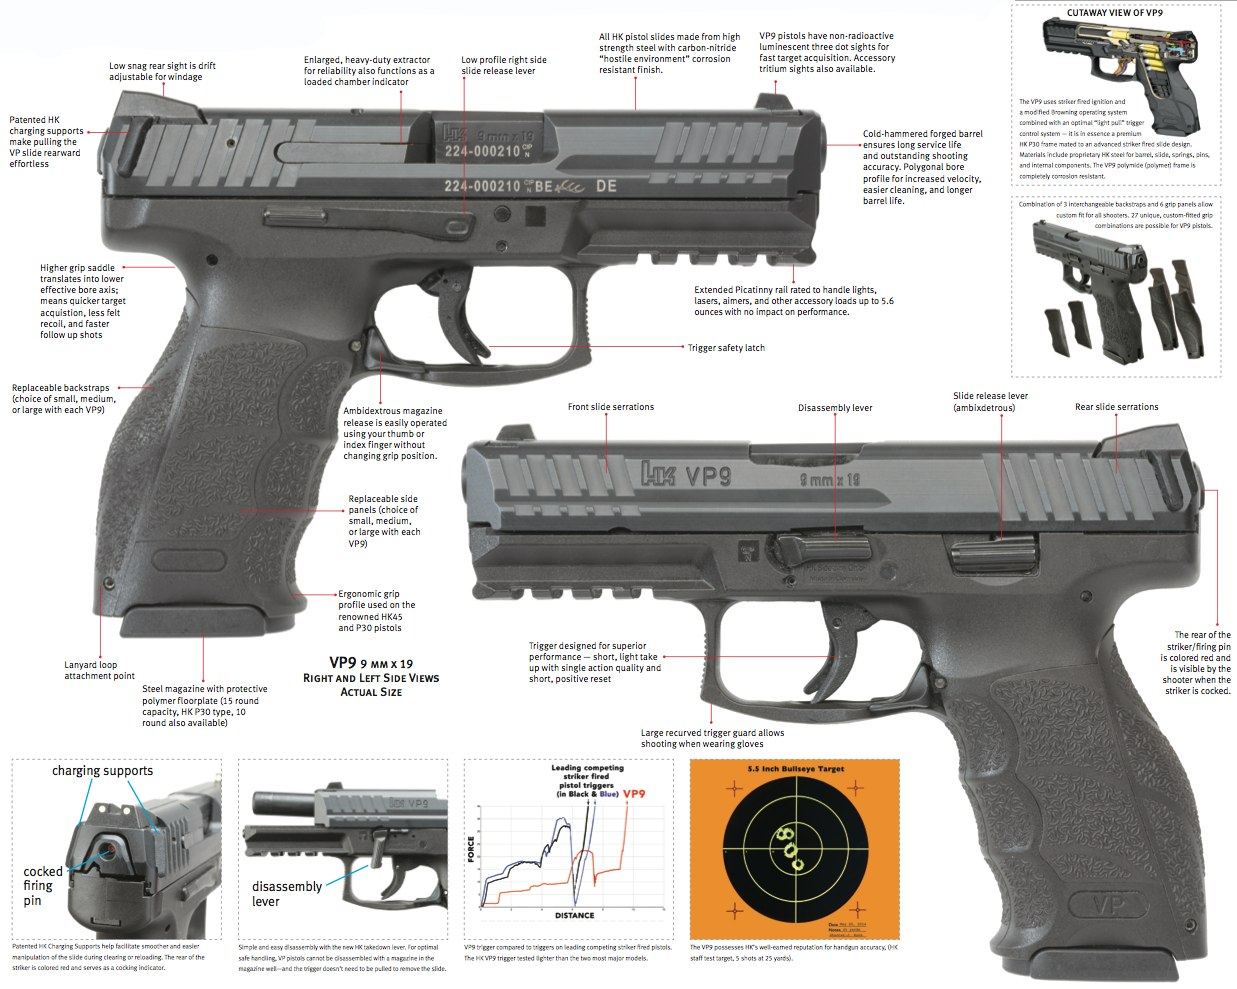 Heckler  Koch VP9 Striker Fired 9mm Pistol 9mm Parabellum 9x19mm NATO Data Sheet 1 Heckler & Koch HK VP9 Striker Fired, Polymer Framed 9mm Combat/Tactical Pistol with Ambi Controls: Better Late than Never...But is it Better than the Glock 17/19 and Smith & Wesson M&P9 Series Pistols? It may be, but well just have to see. (Video!)